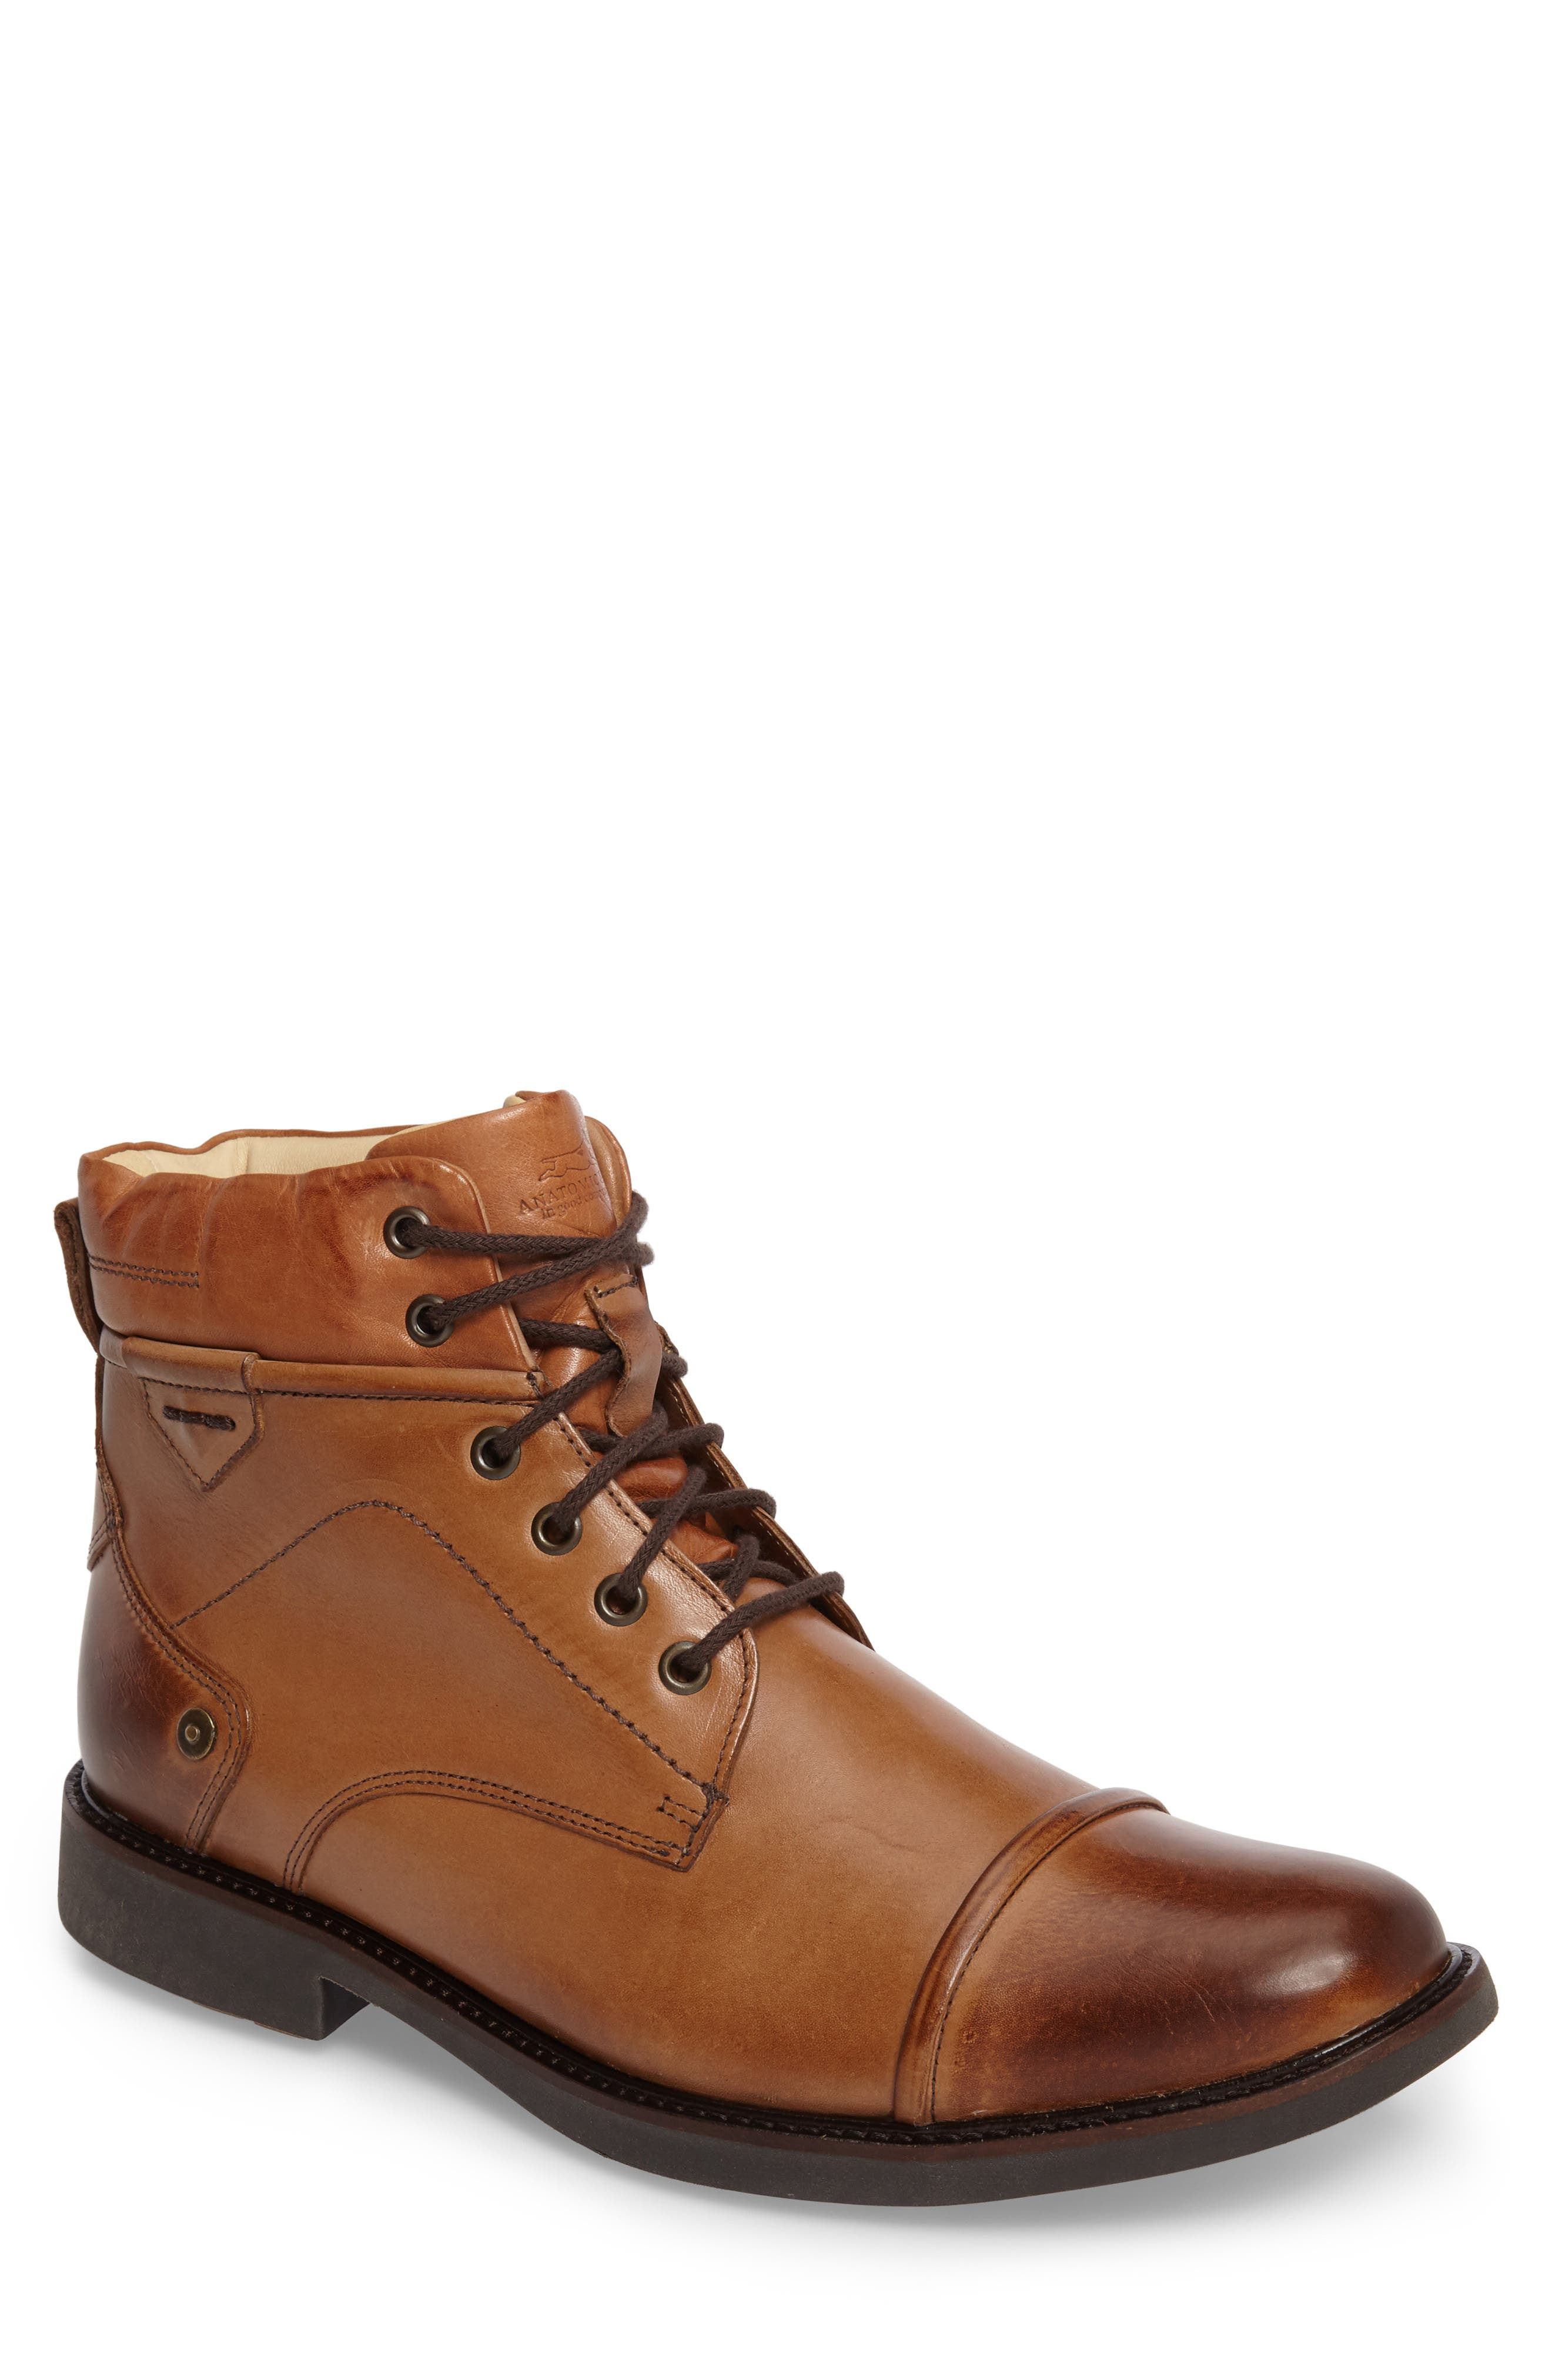 Samuel Cap Toe Boot,                         Main,                         color, Touch Bronze Foxy